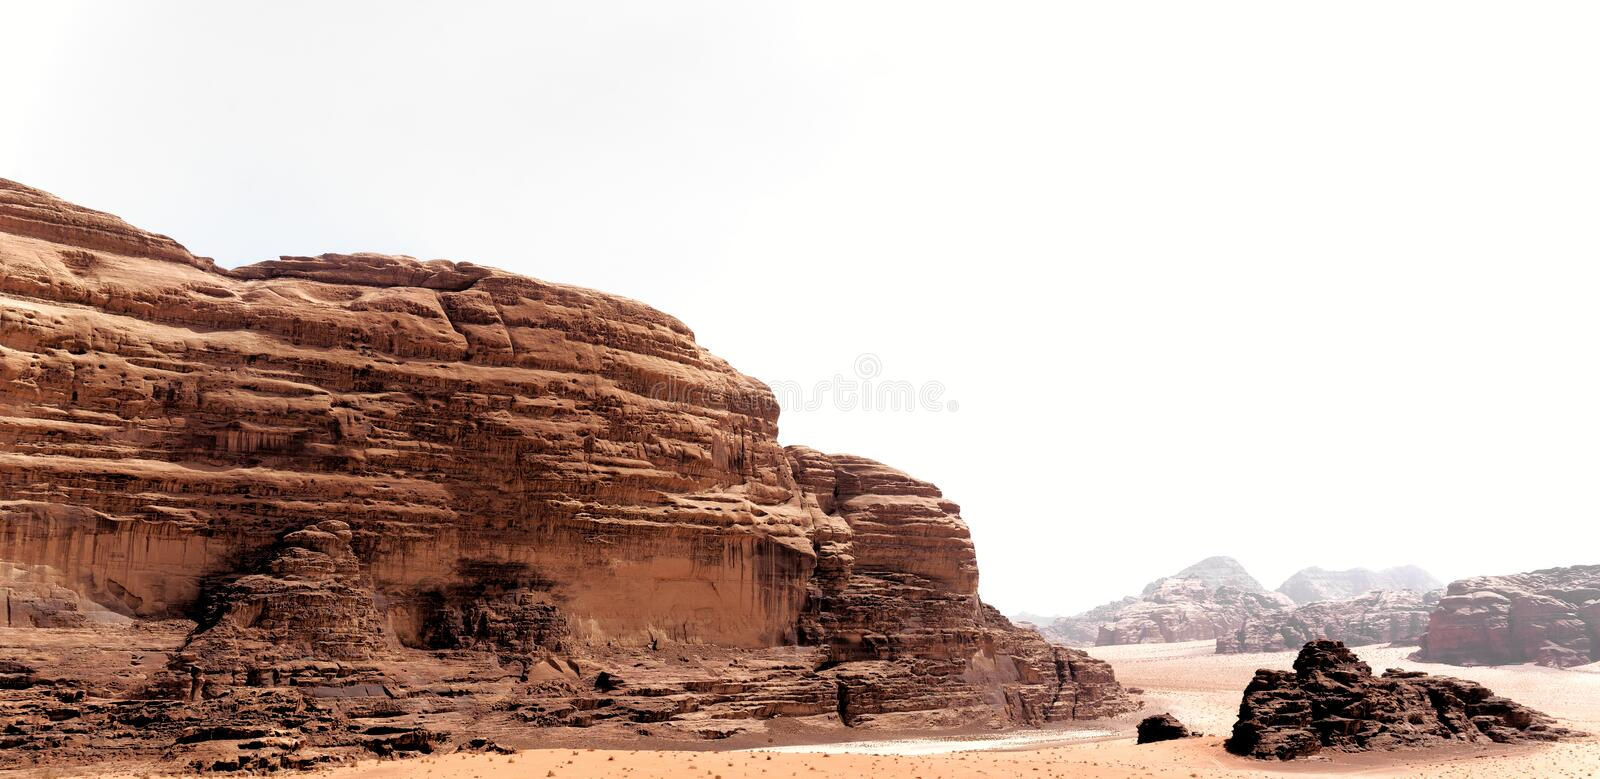 Panoramic view from the mighty rocky landscape in the desert of Wadi Rum, Jordan royalty free stock photography